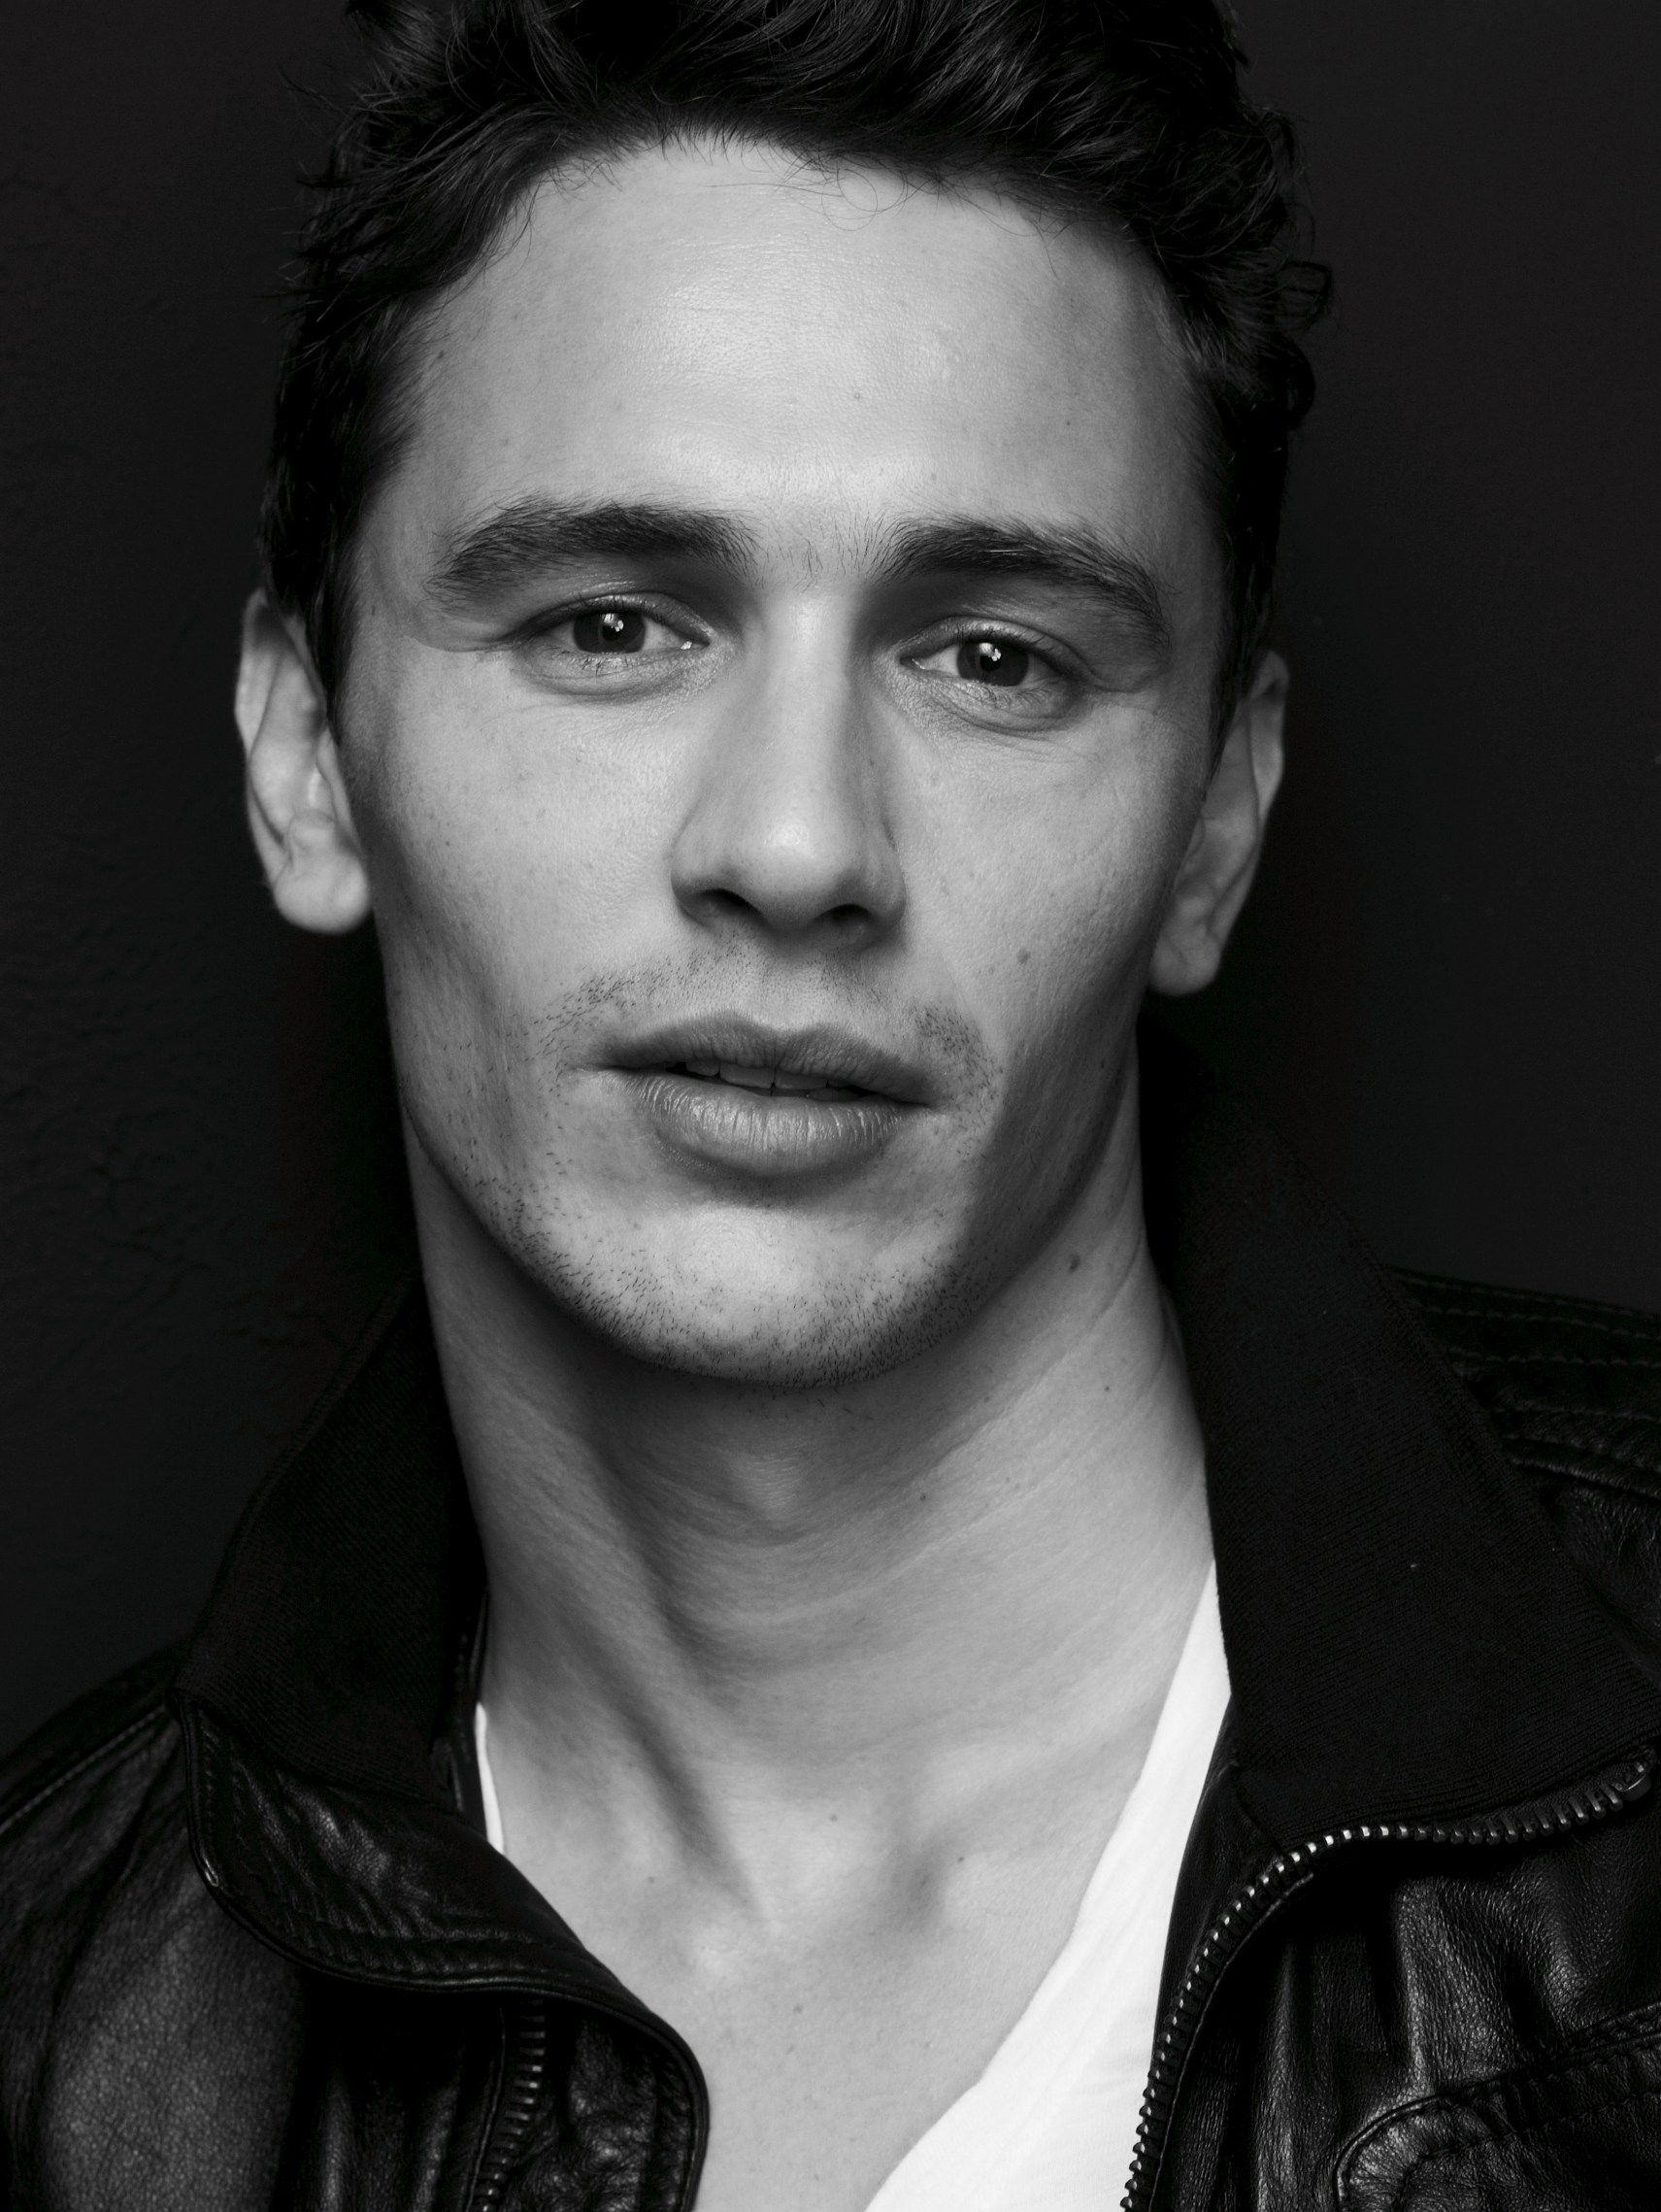 James franco hes so yummy actor also best actors images celebrities beautiful people cute guys rh pinterest